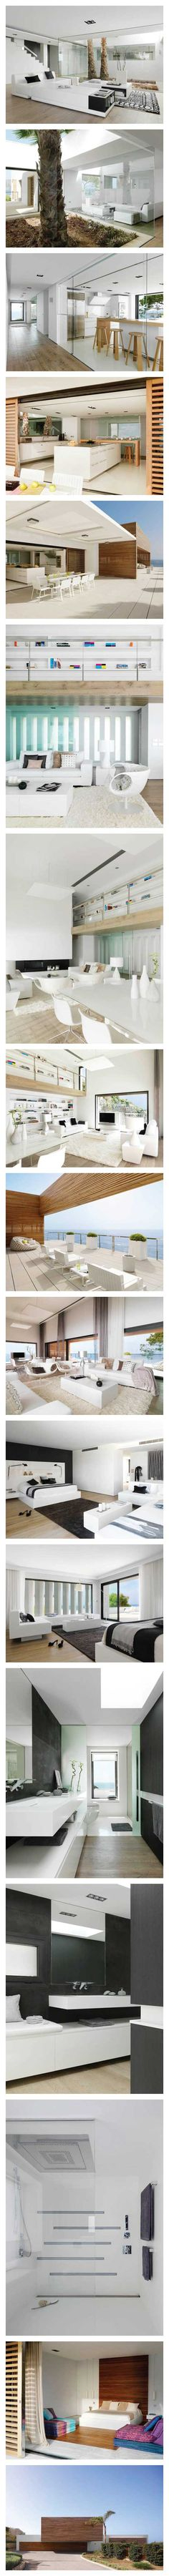 Pure White by Susanna Cots Barcelona-based designer Susanna Cots designed the interior of this cliff side house in Almuñecar, Granada that she calls Pure White. The main color of the house is obviously white, for it's the sum of all colors of light. With its location right by the ocean, the house is bombarded by natural light making white seem like the perfect starting point for the design.